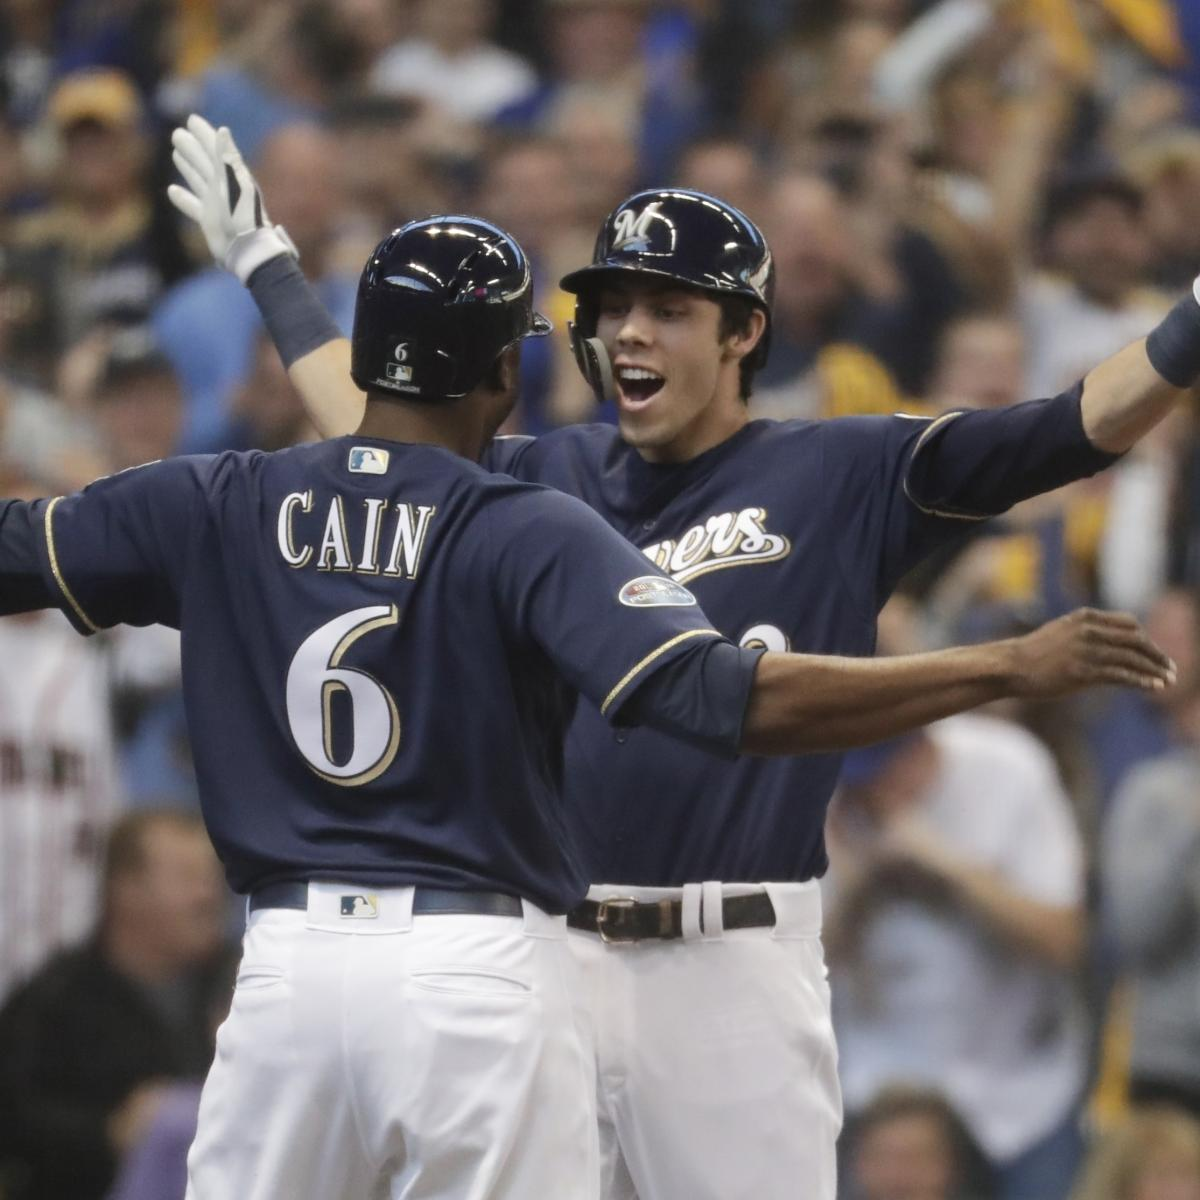 Christian Yelich, Brewers Take 2-0 Series Lead with Game 2 Win vs. Rockies